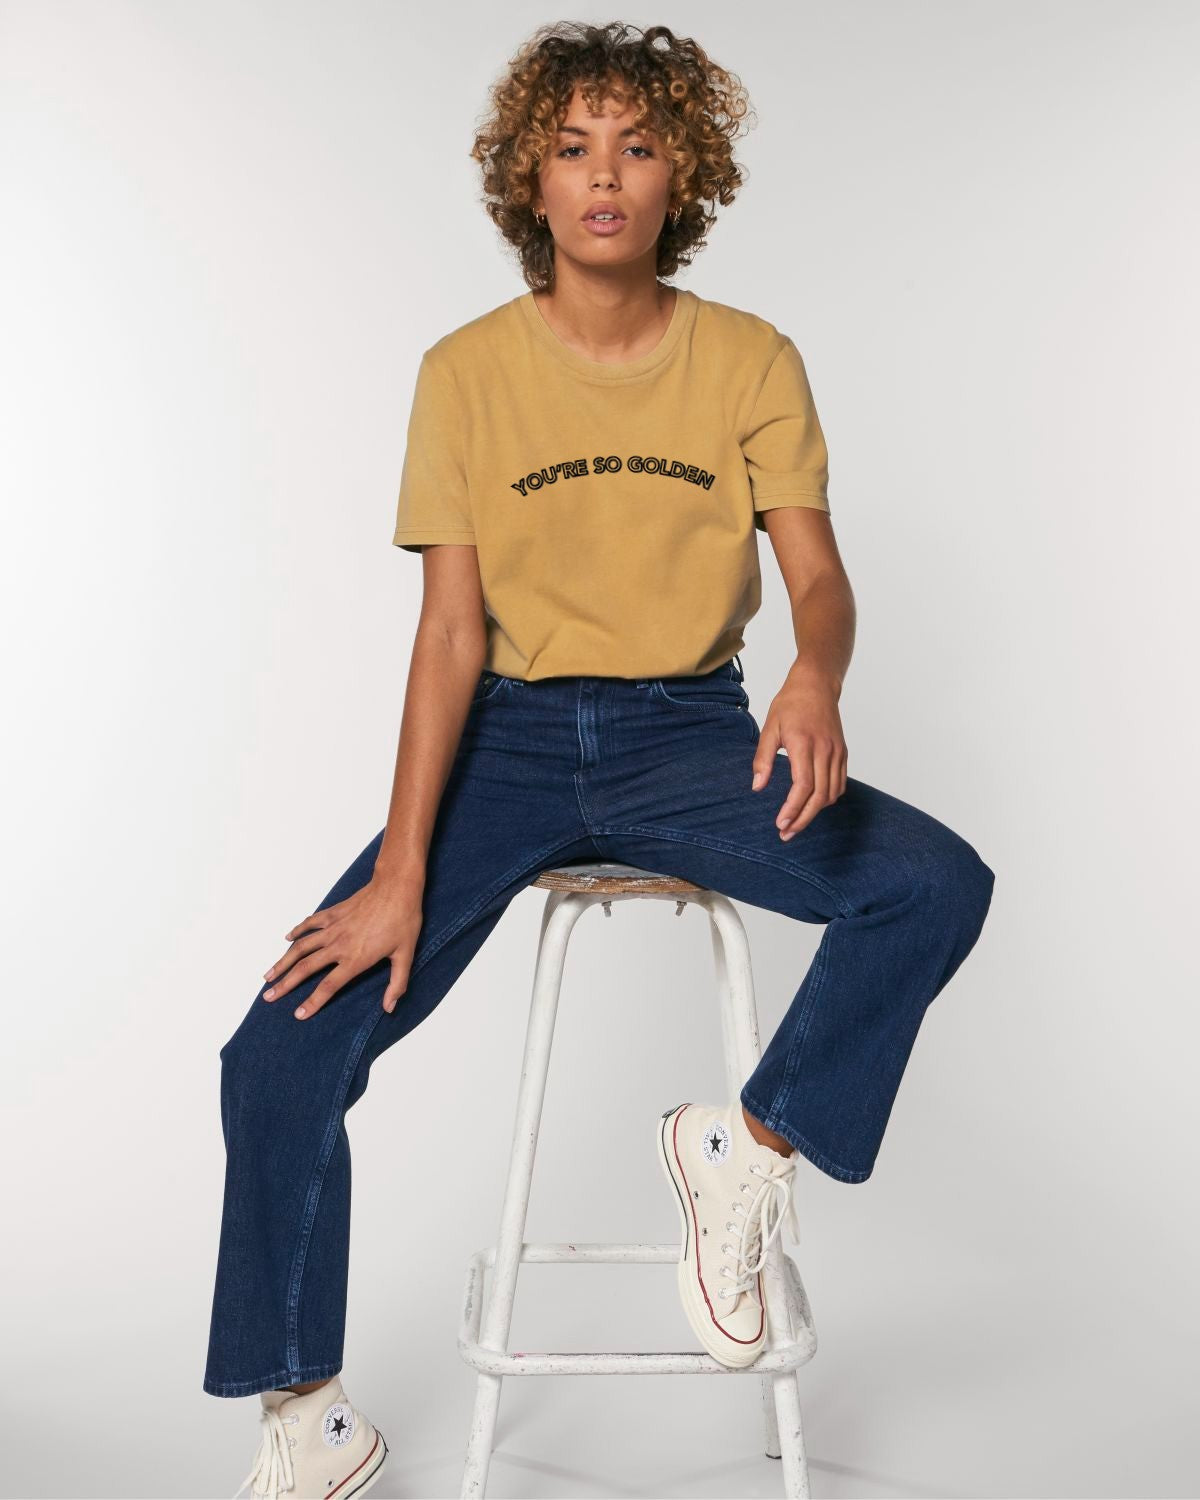 'YOU'RE SO GOLDEN' EMBROIDERED WOMEN'S GARMENT DYED ORGANIC COTTON 'CREATOR VINTAGE' T-SHIRT